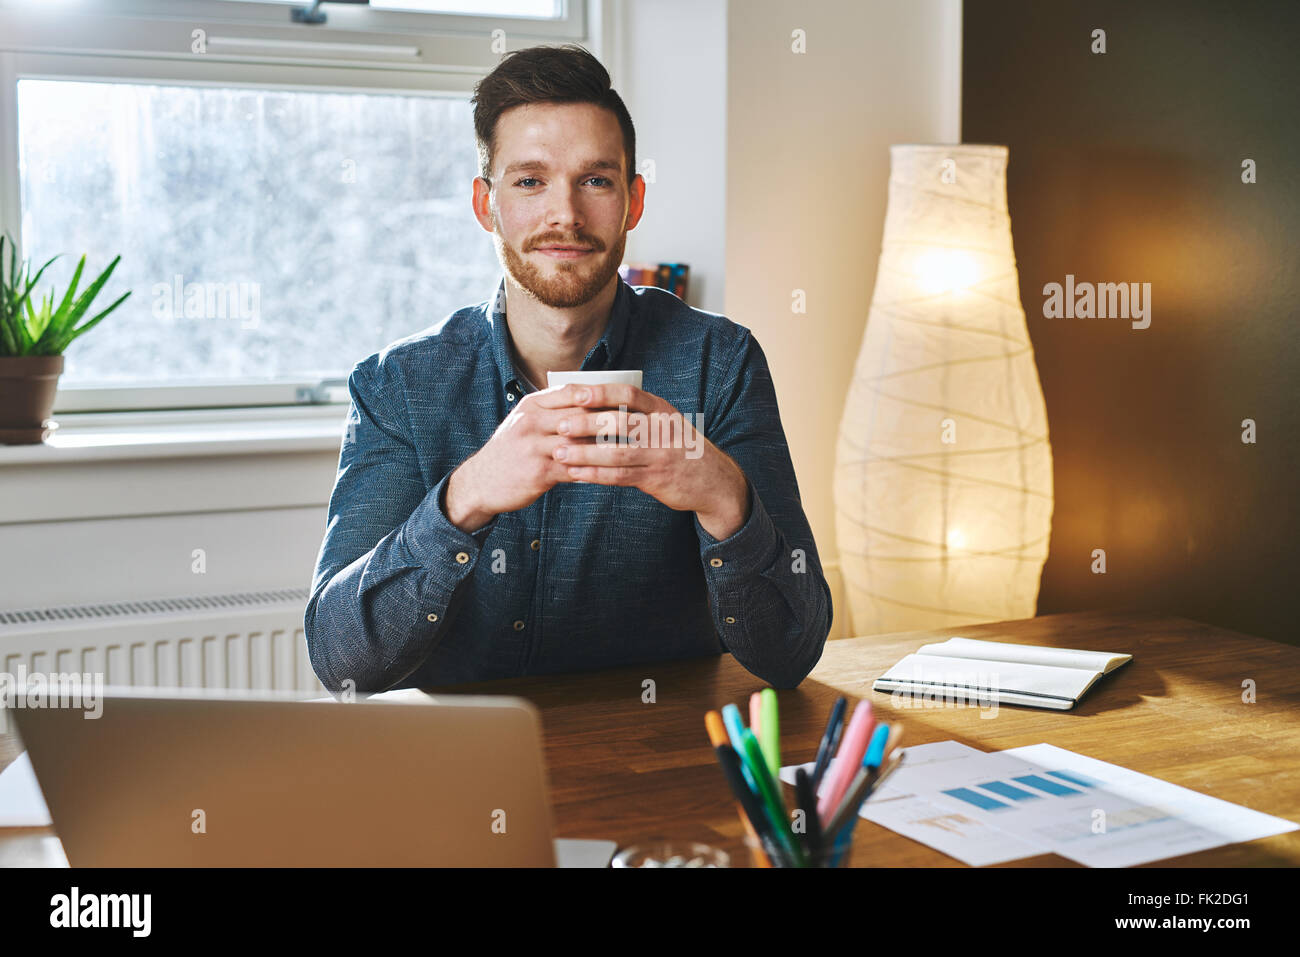 Young entrepreneur sitting in his office holding a cup of coffee smiling to the camera - Stock Image